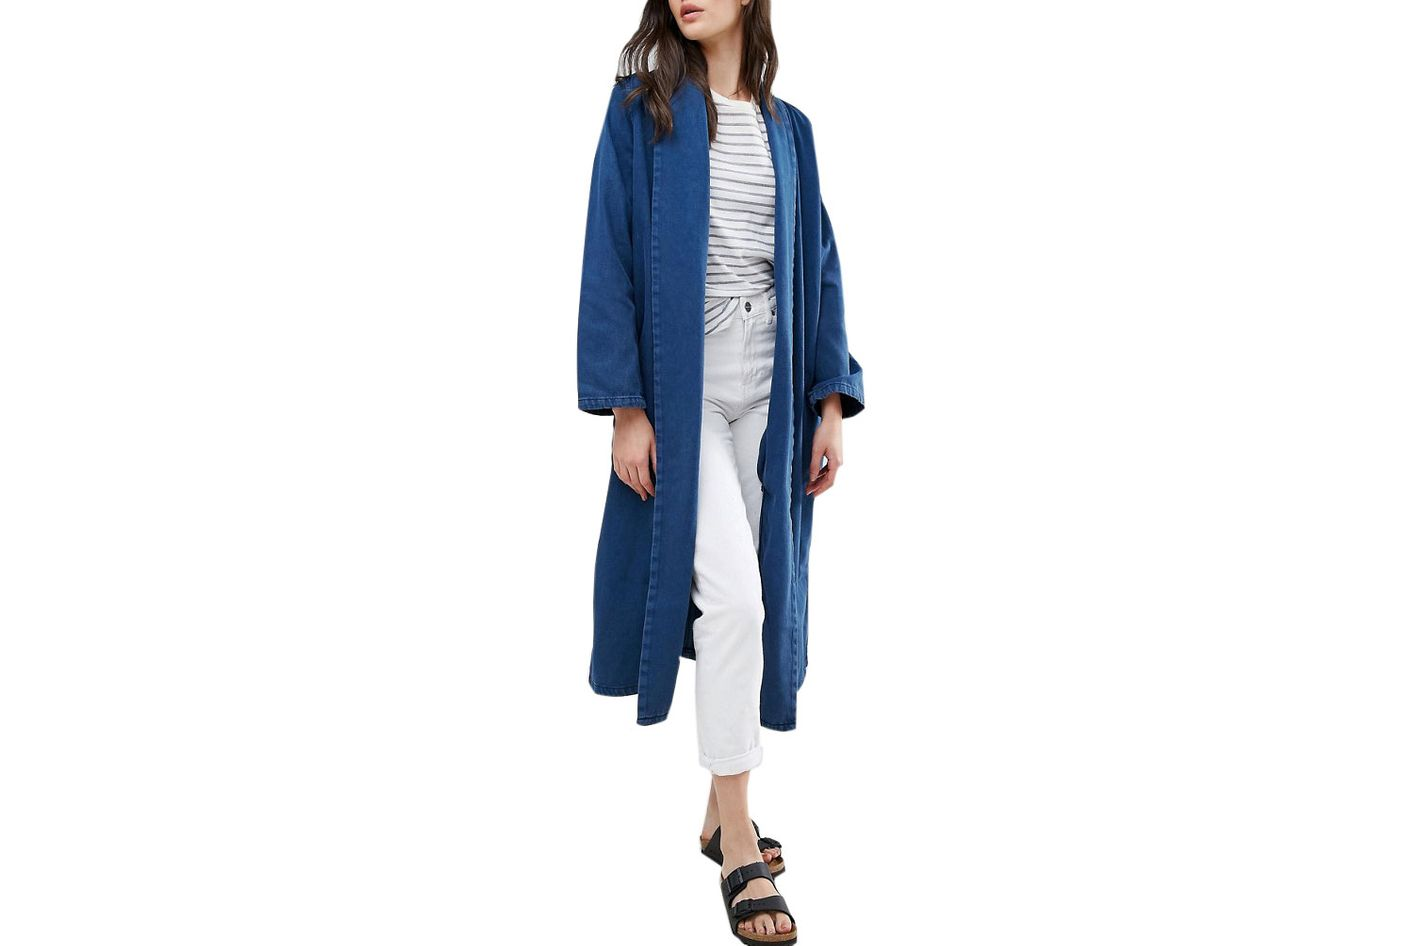 Waven Anja Flap Collar Denim Duster Coat